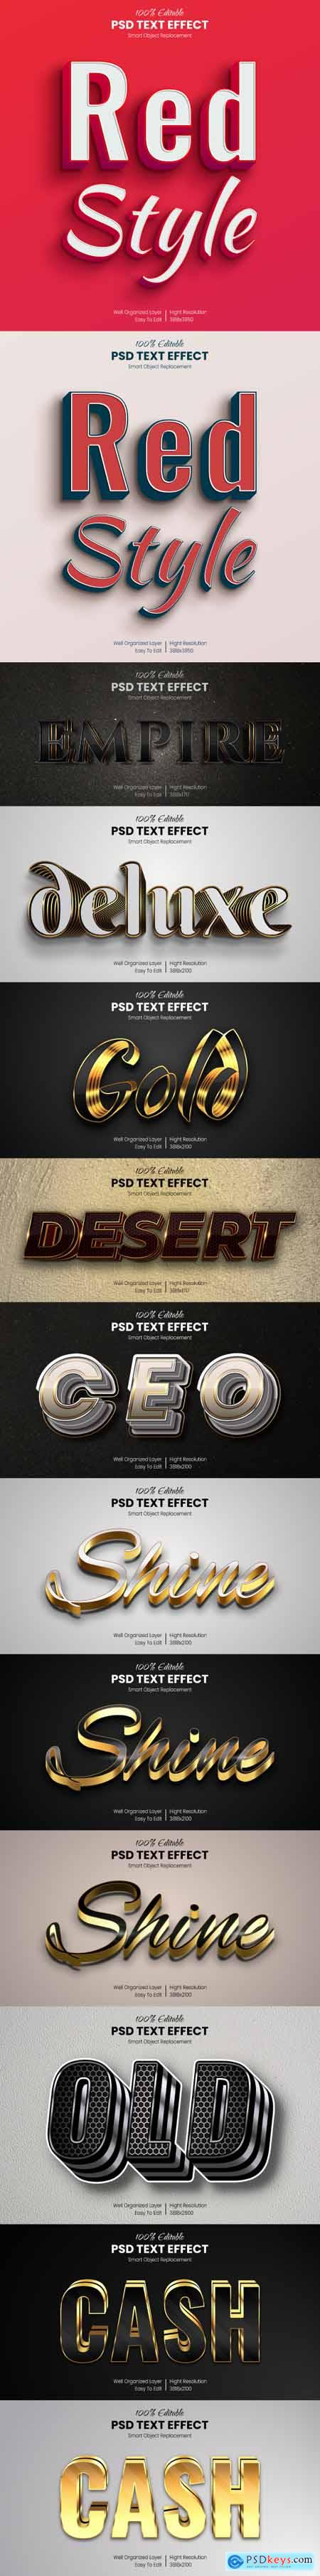 13 Photoshop Text Effects - Luxury Styles 30702118